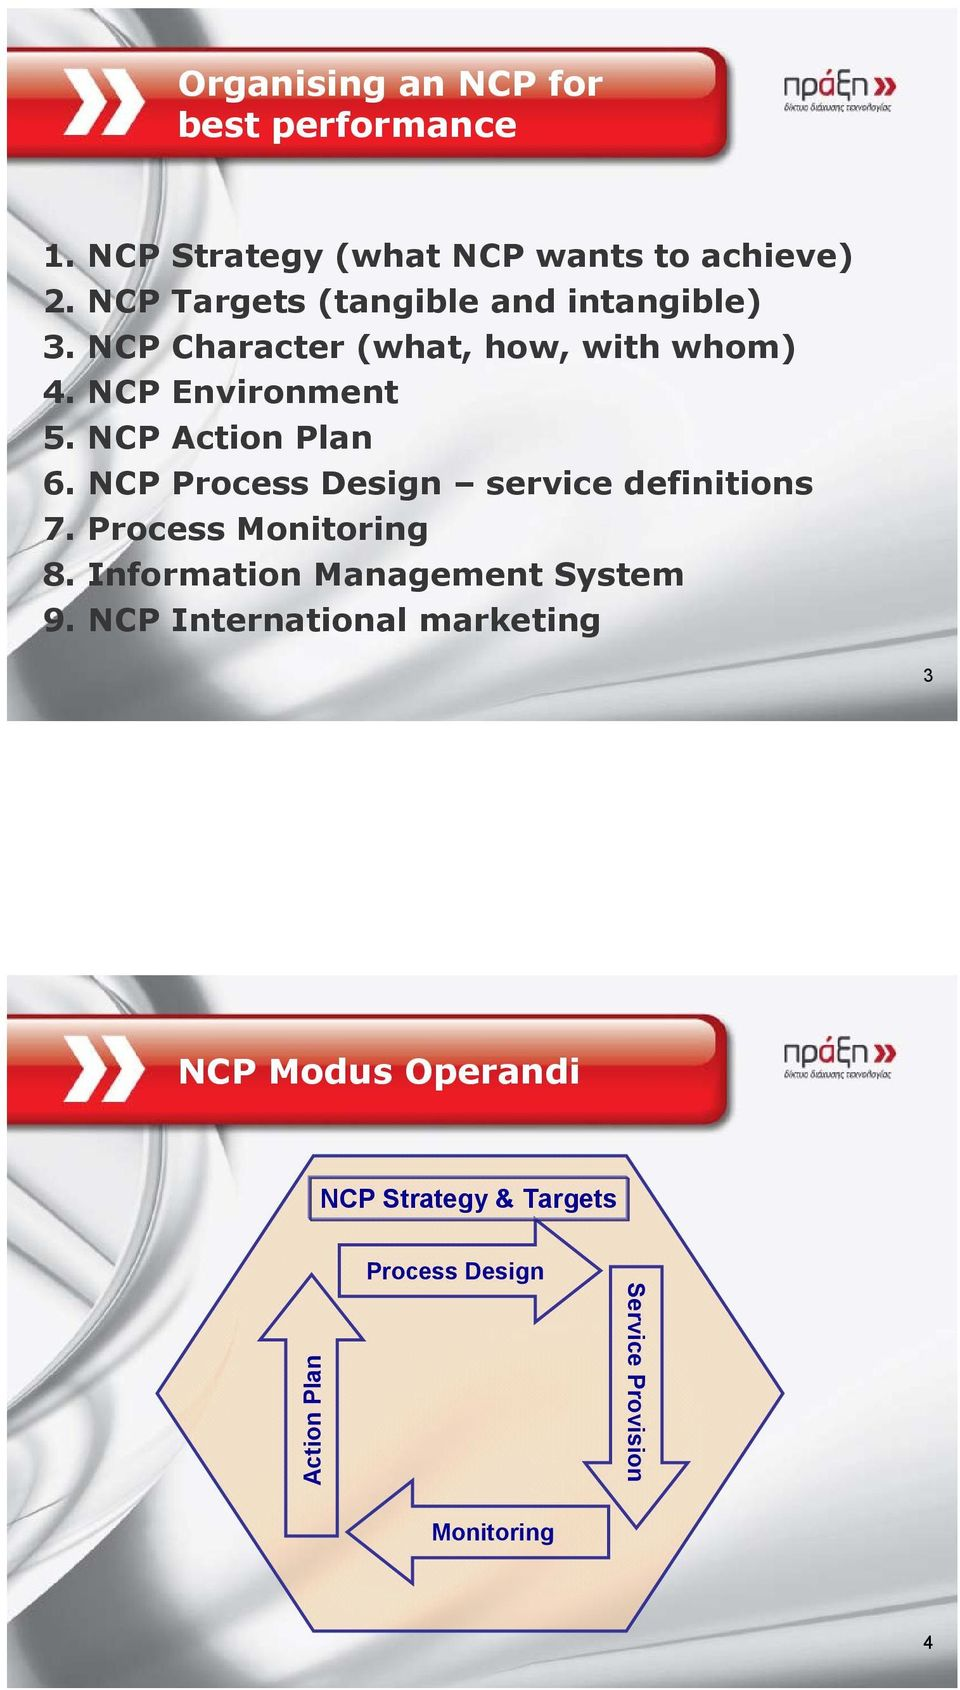 NCP Action Plan 6. NCP Process Design service definitions 7. Process Monitoring 8.